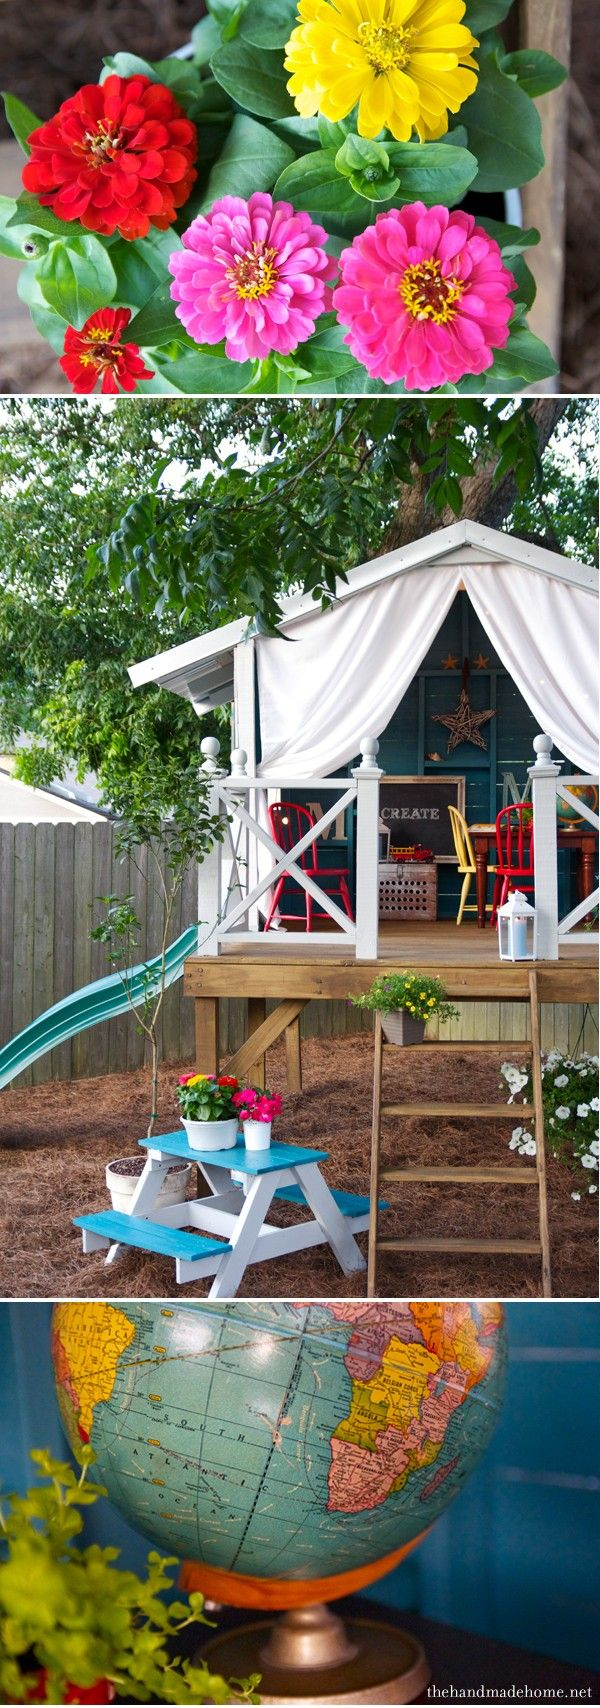 216 best images about kids on pinterest a shed play houses and